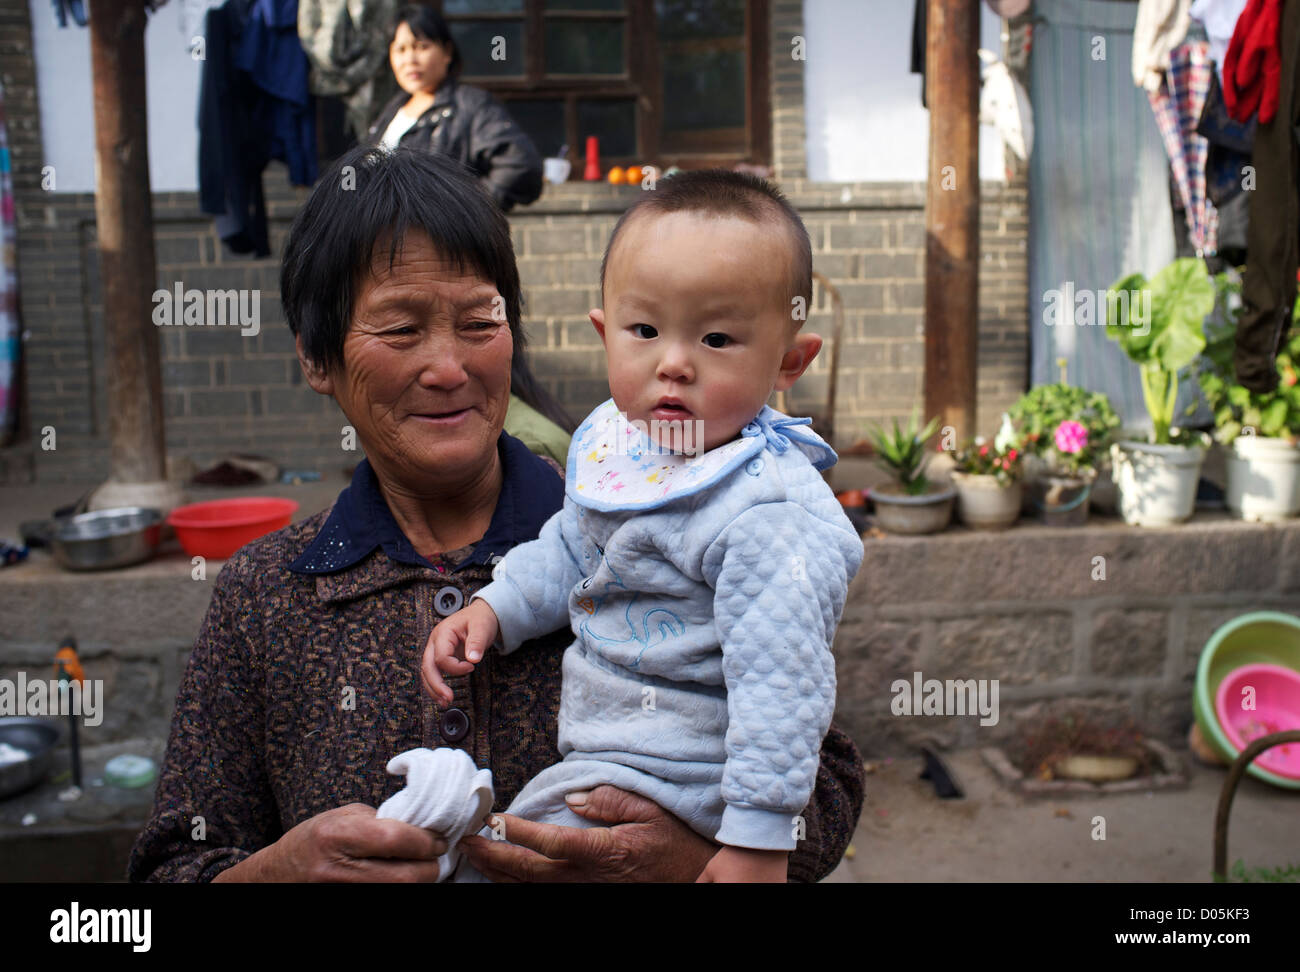 An elder lady holds a little boy at a courtyard in Laofen village, Pingshan county, Hebei, China. 23-Oct-2012 - Stock Image